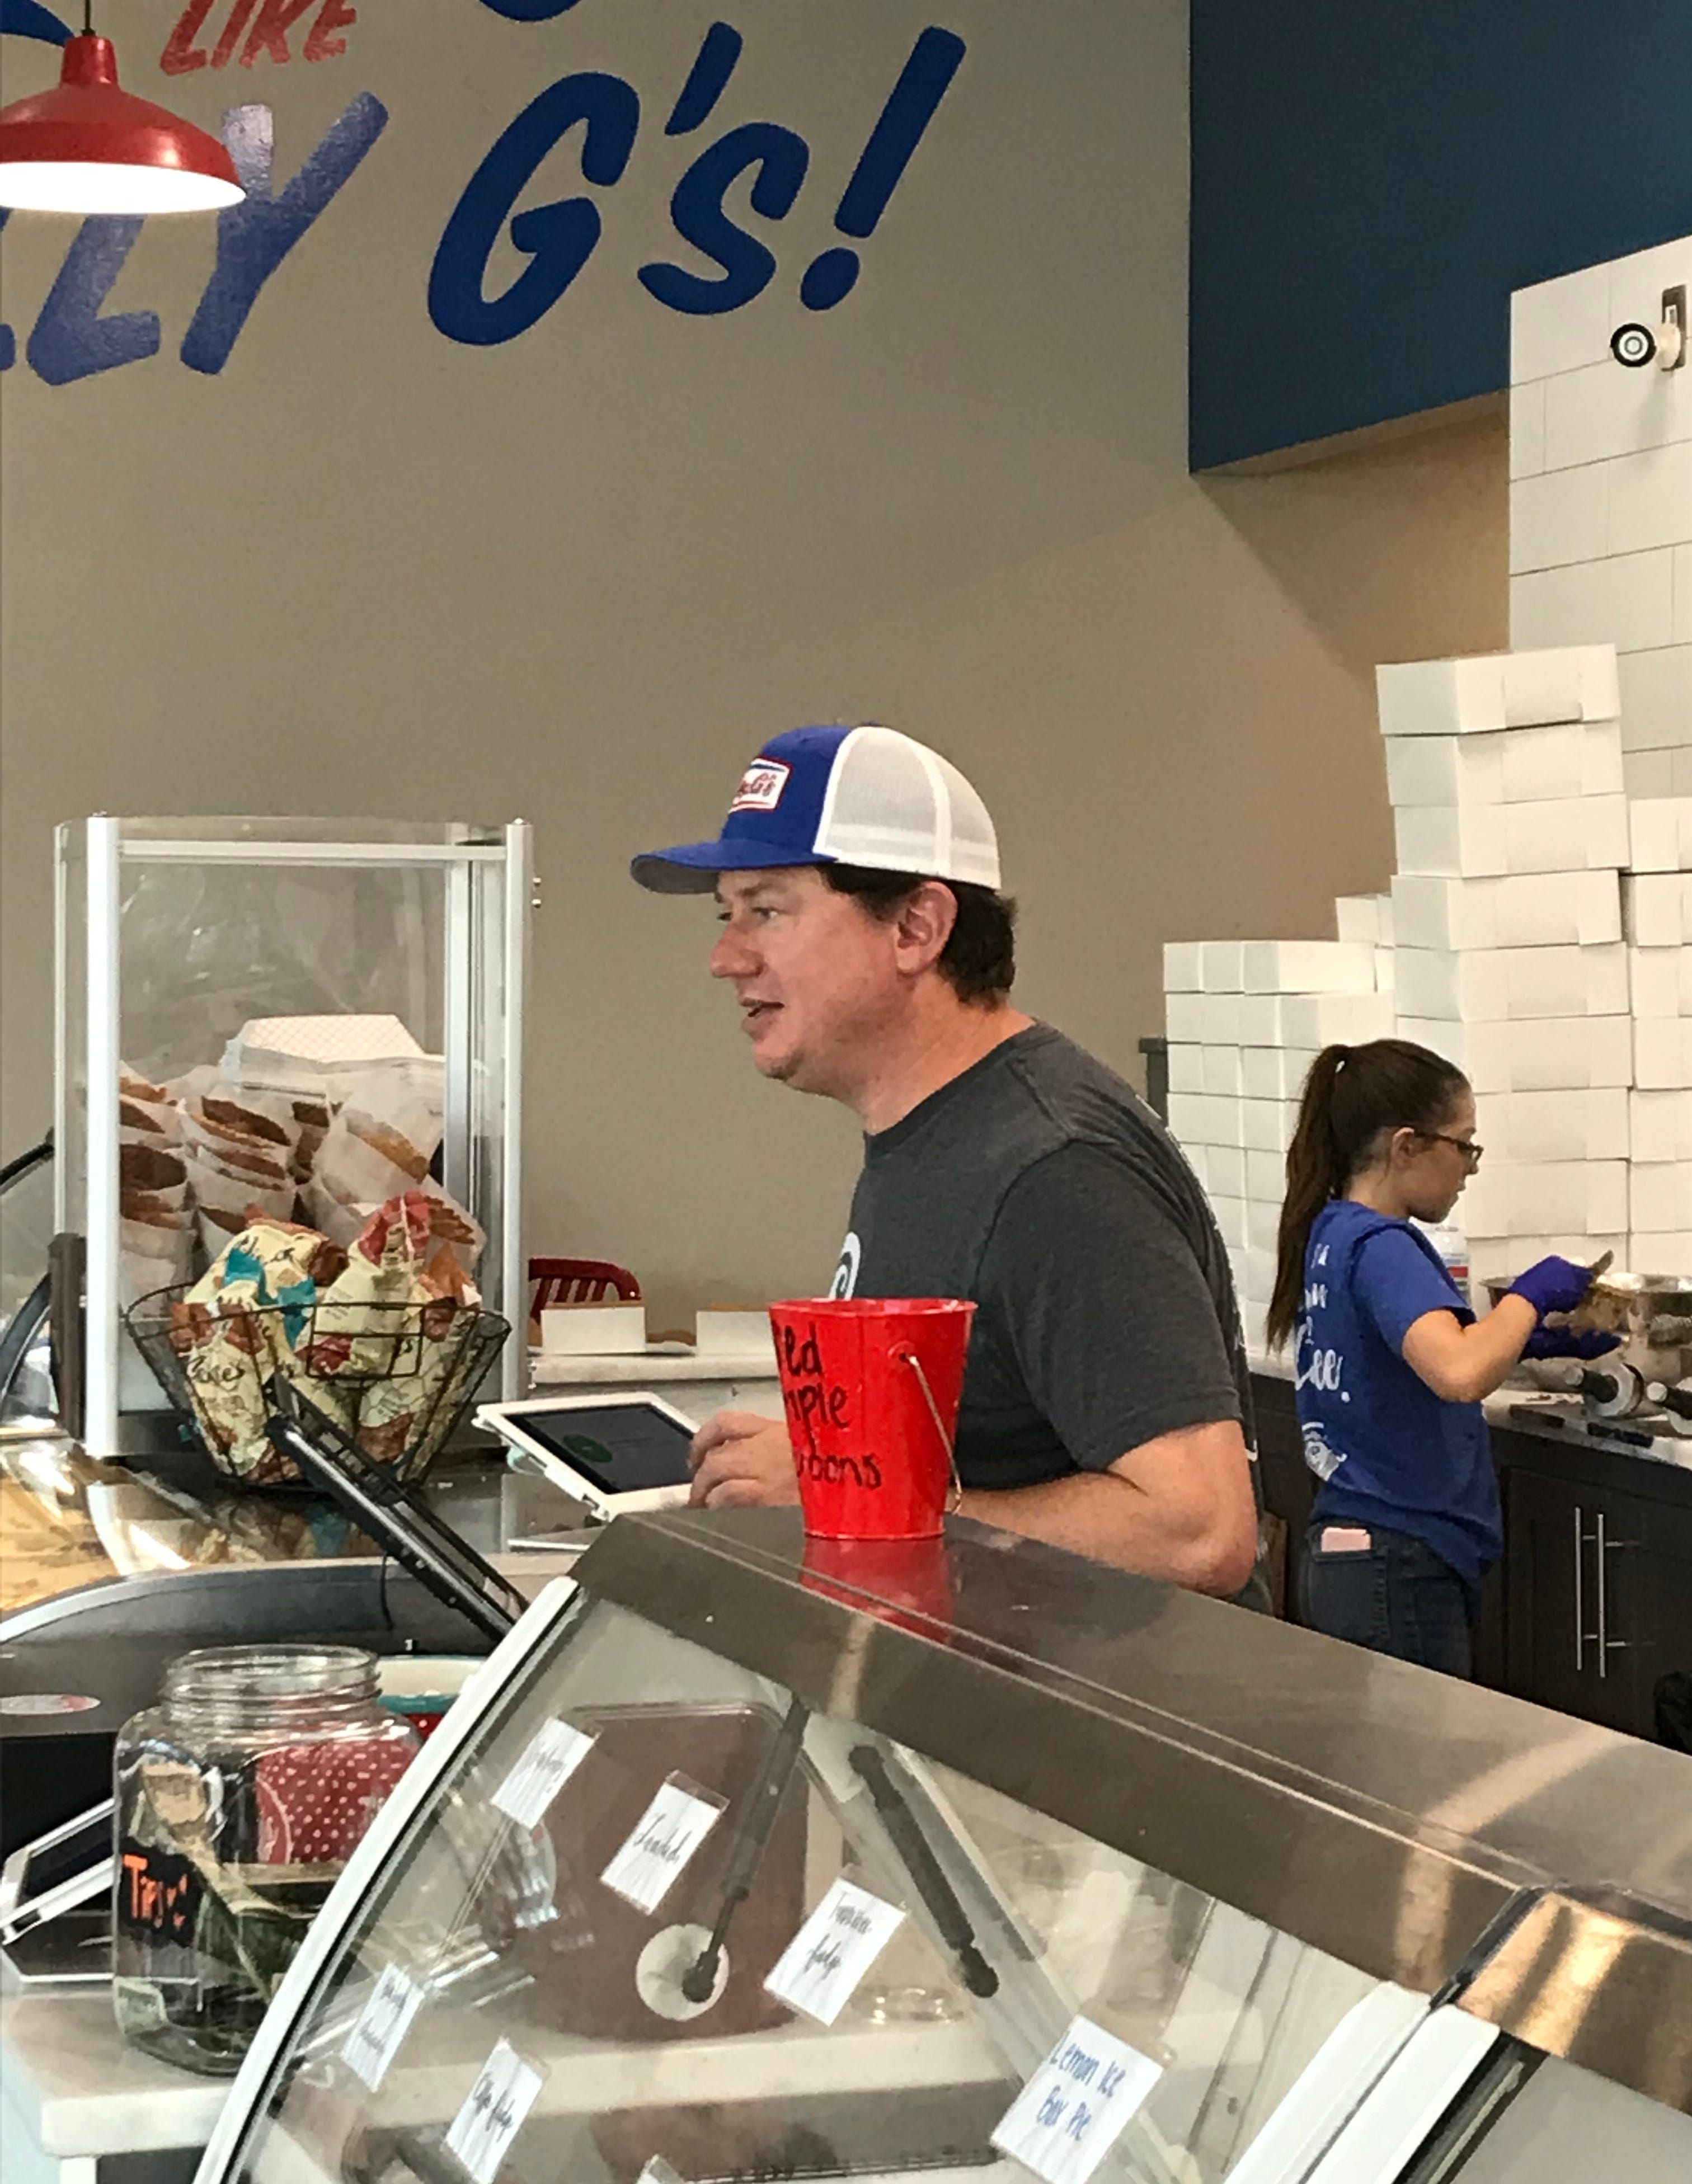 Owner Joey Boykin helps a customer at his Clarksville ice cream parlor, Golly G's Coffee, Ice Cream & Sweets.